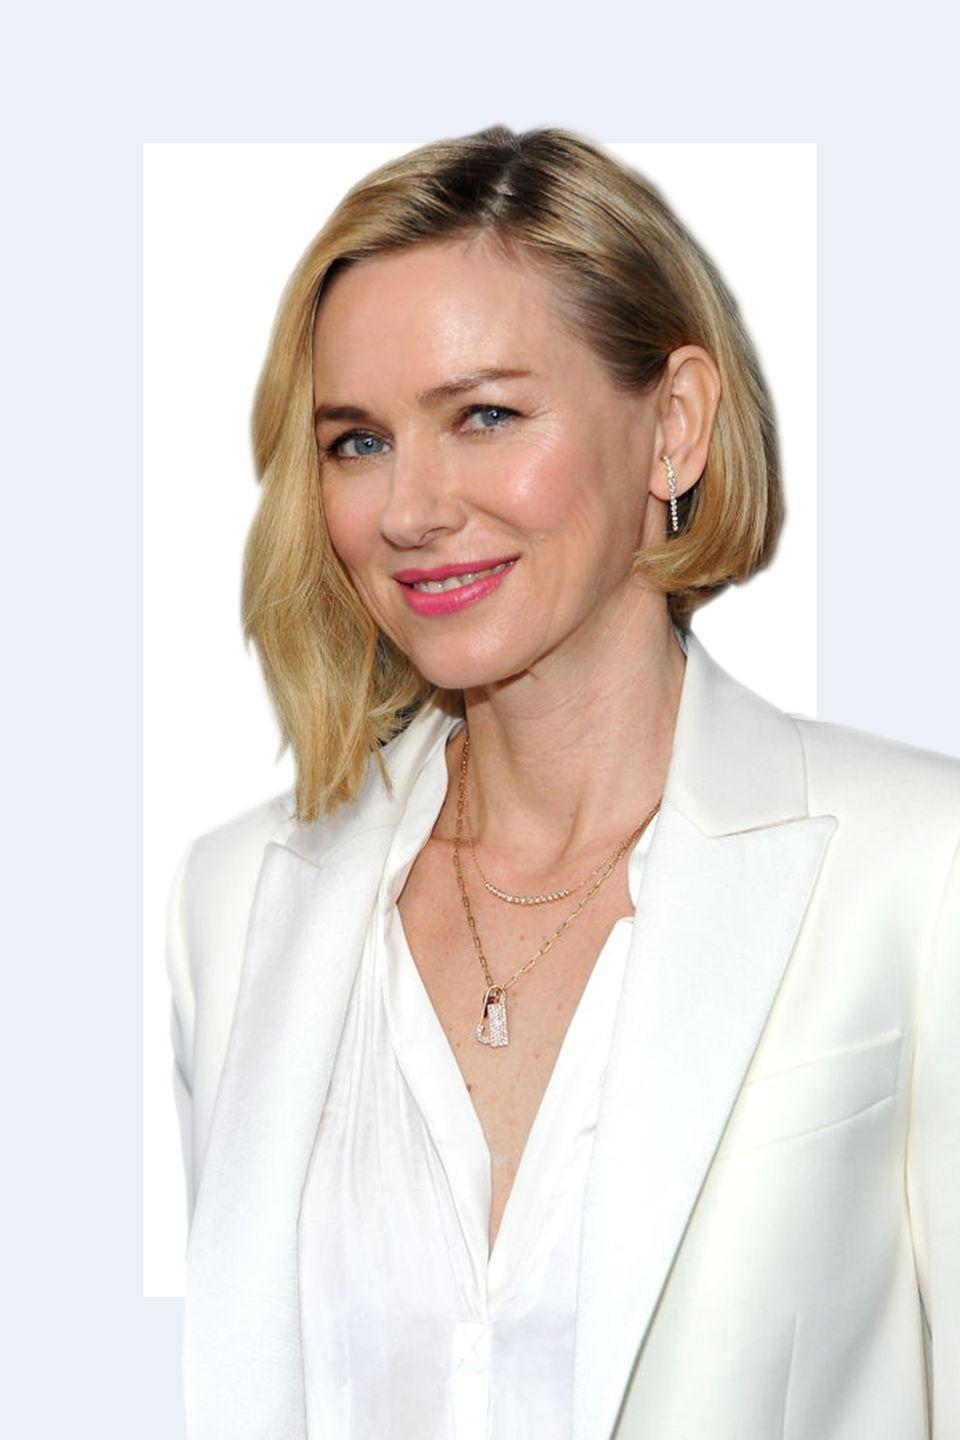 """<p>""""I'm not into trends for people of any age, really. Everyone should be timeless, chic, and sophisticated. Some staples you should have are a <strong>white blazer, a cream blouse, and a black sweater</strong>; pieces that won't fade away."""" -<em><a rel=""""nofollow noopener"""" href=""""http://www.ashleypruitt.com/"""" target=""""_blank"""" data-ylk=""""slk:Ashley Pruitt"""" class=""""link rapid-noclick-resp"""">Ashley Pruitt</a></em></p>"""